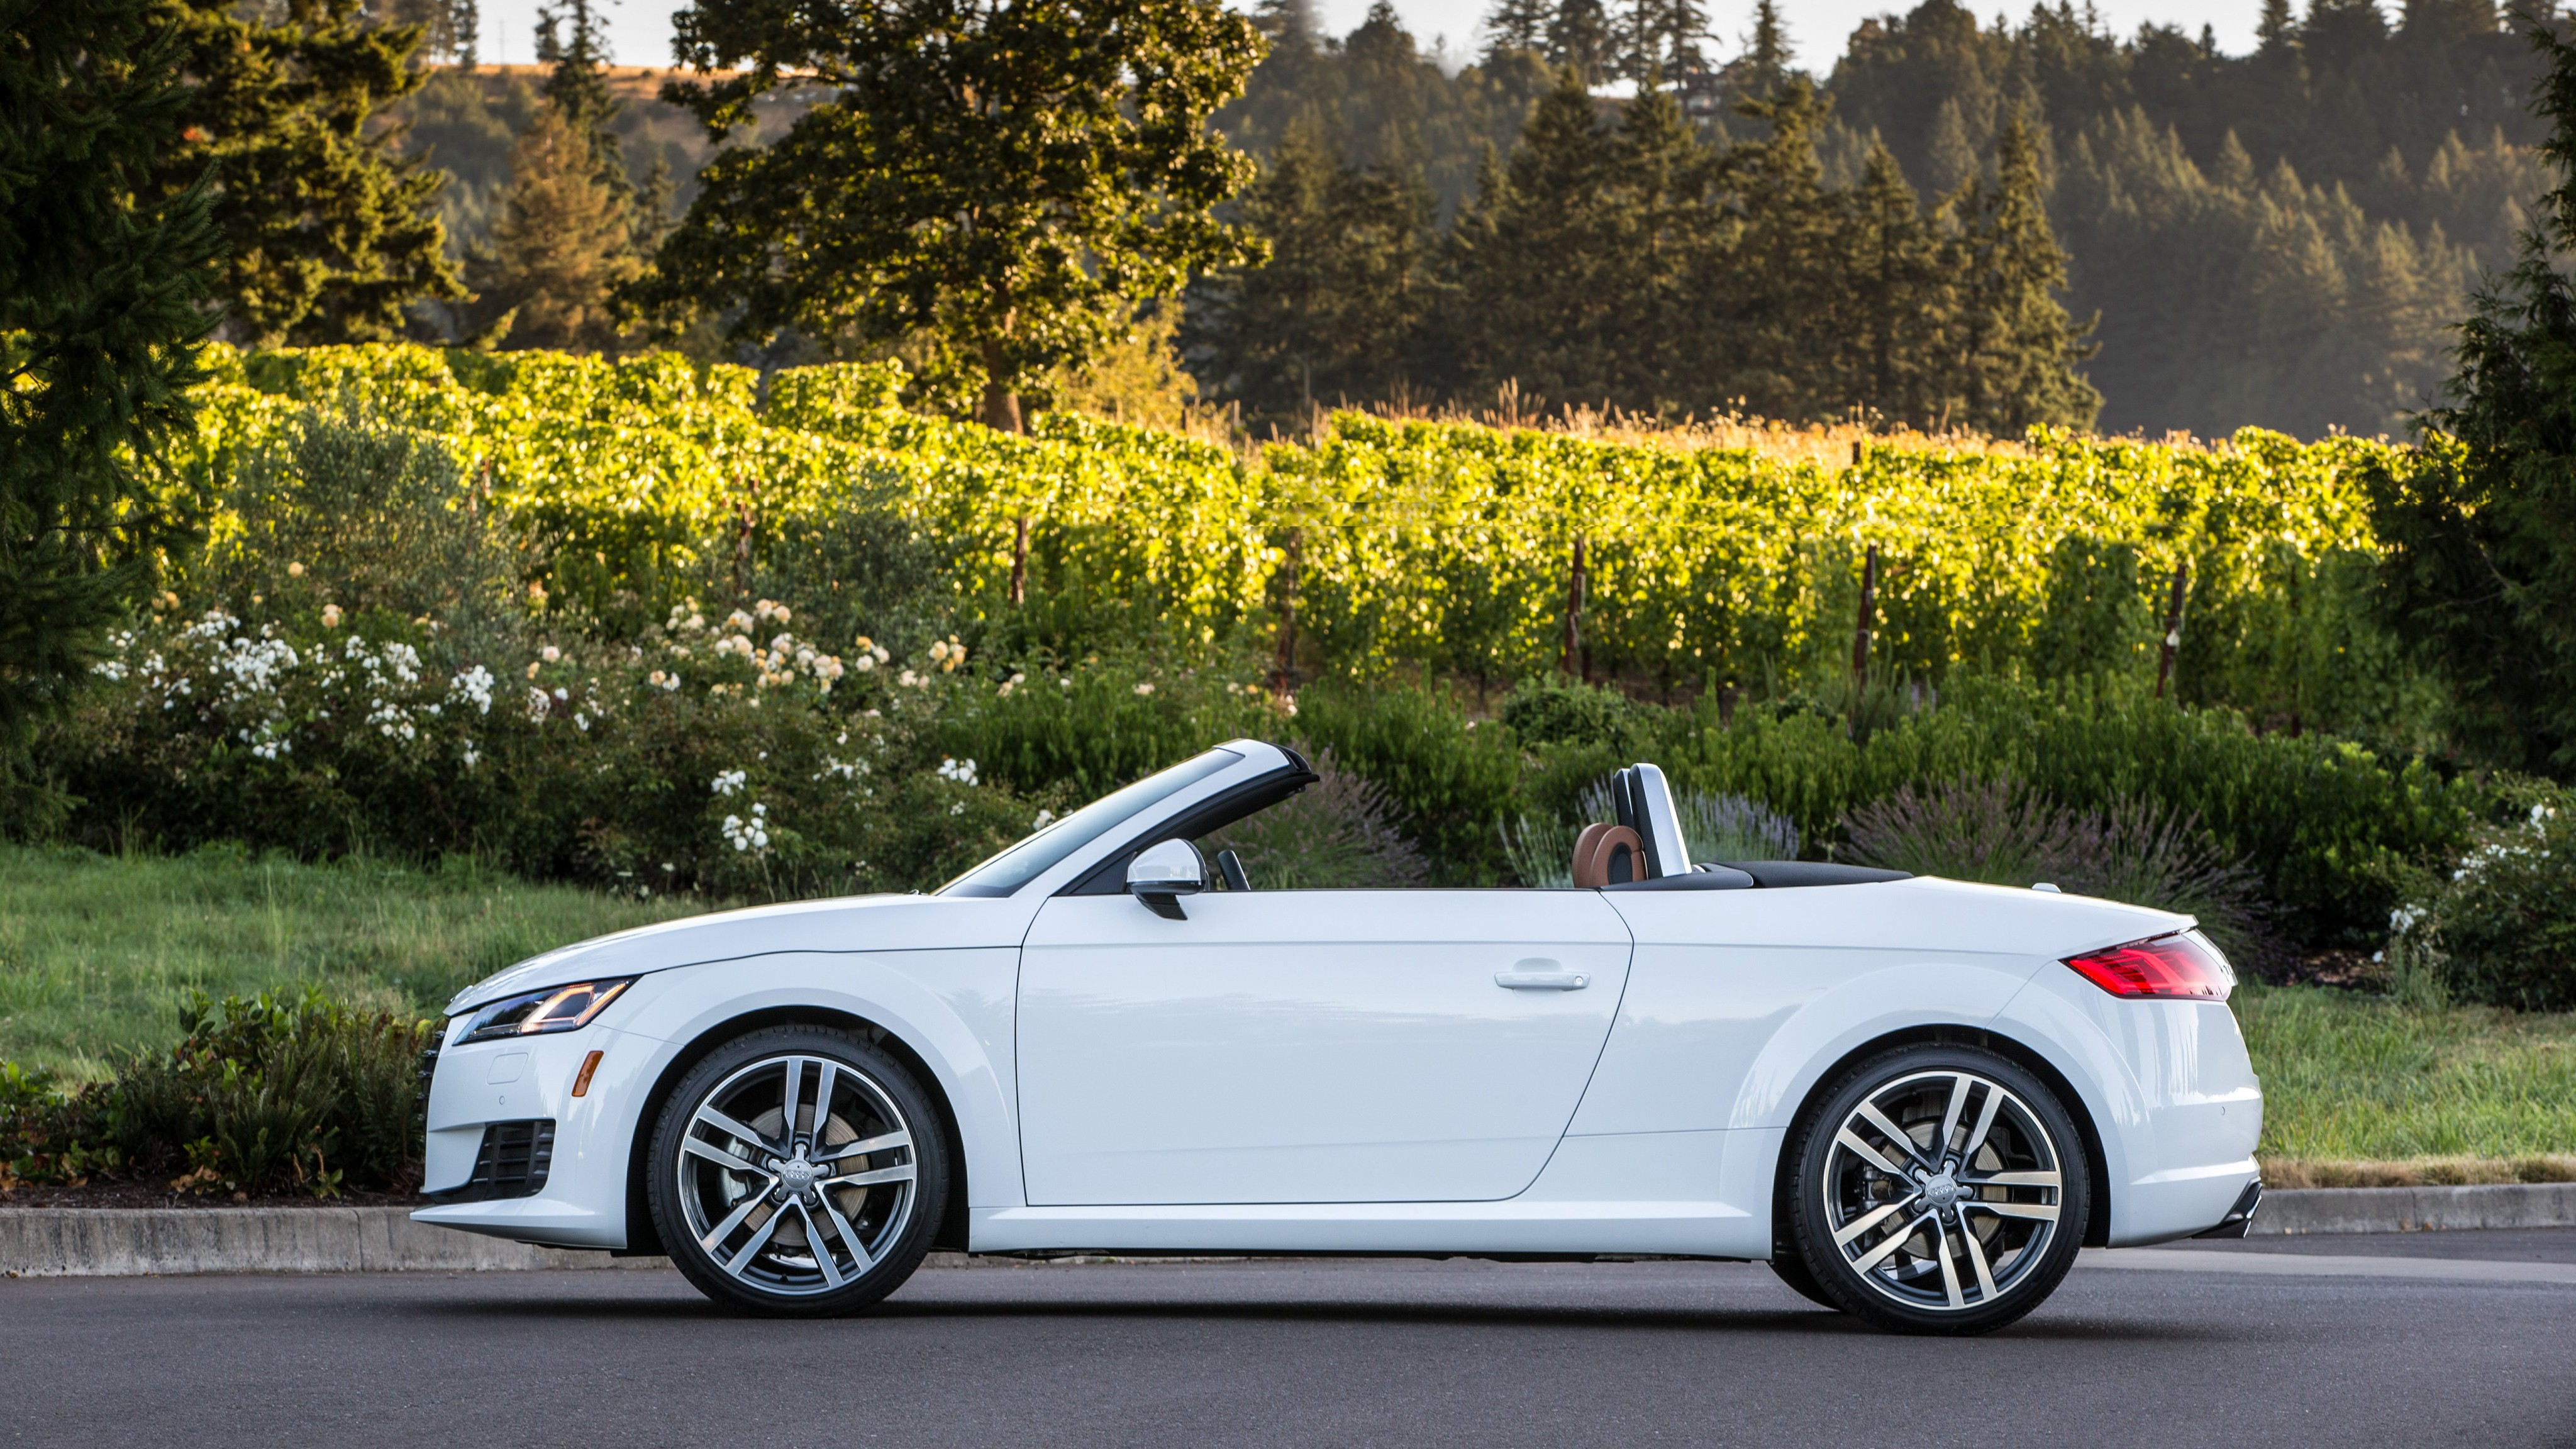 audi tt roadster specs 2014 2015 2016 2017 2018 autoevolution. Black Bedroom Furniture Sets. Home Design Ideas